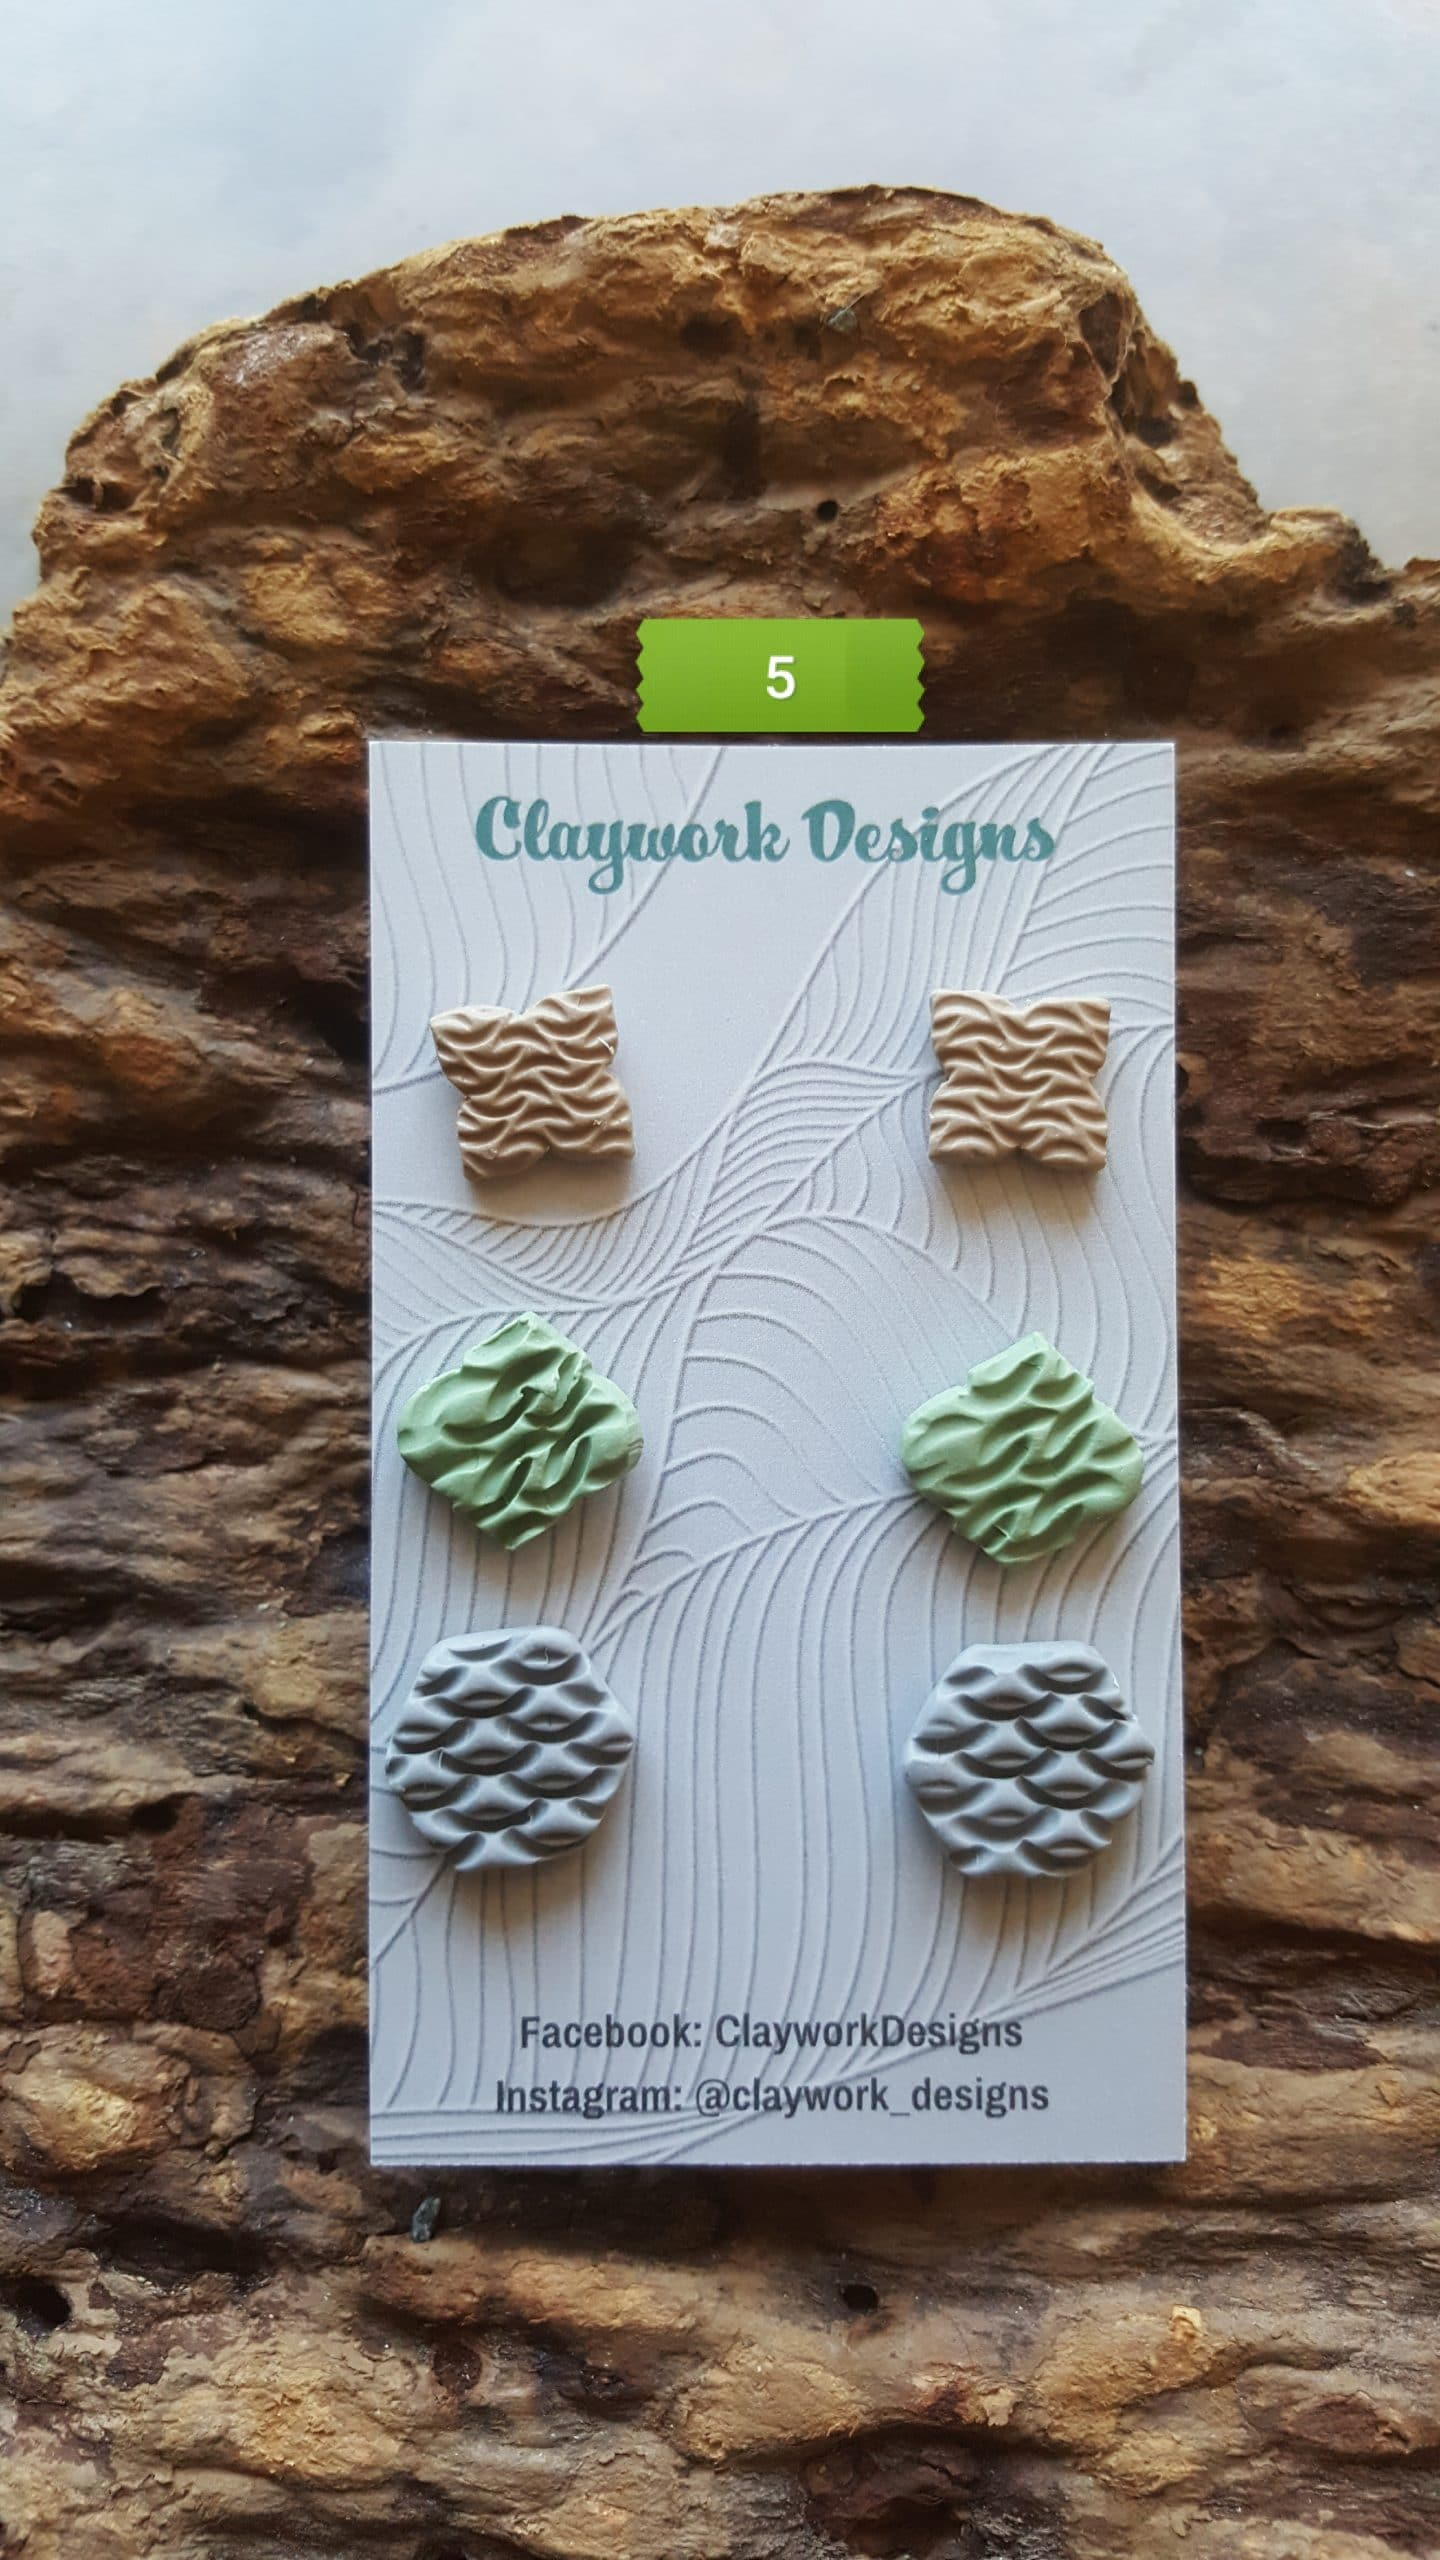 Wirework Designs | Handcrafted chainmaille jewellery and chainmaille products | Chainmaille Weave Stud Earring - 3 Packs | 20210620_172155